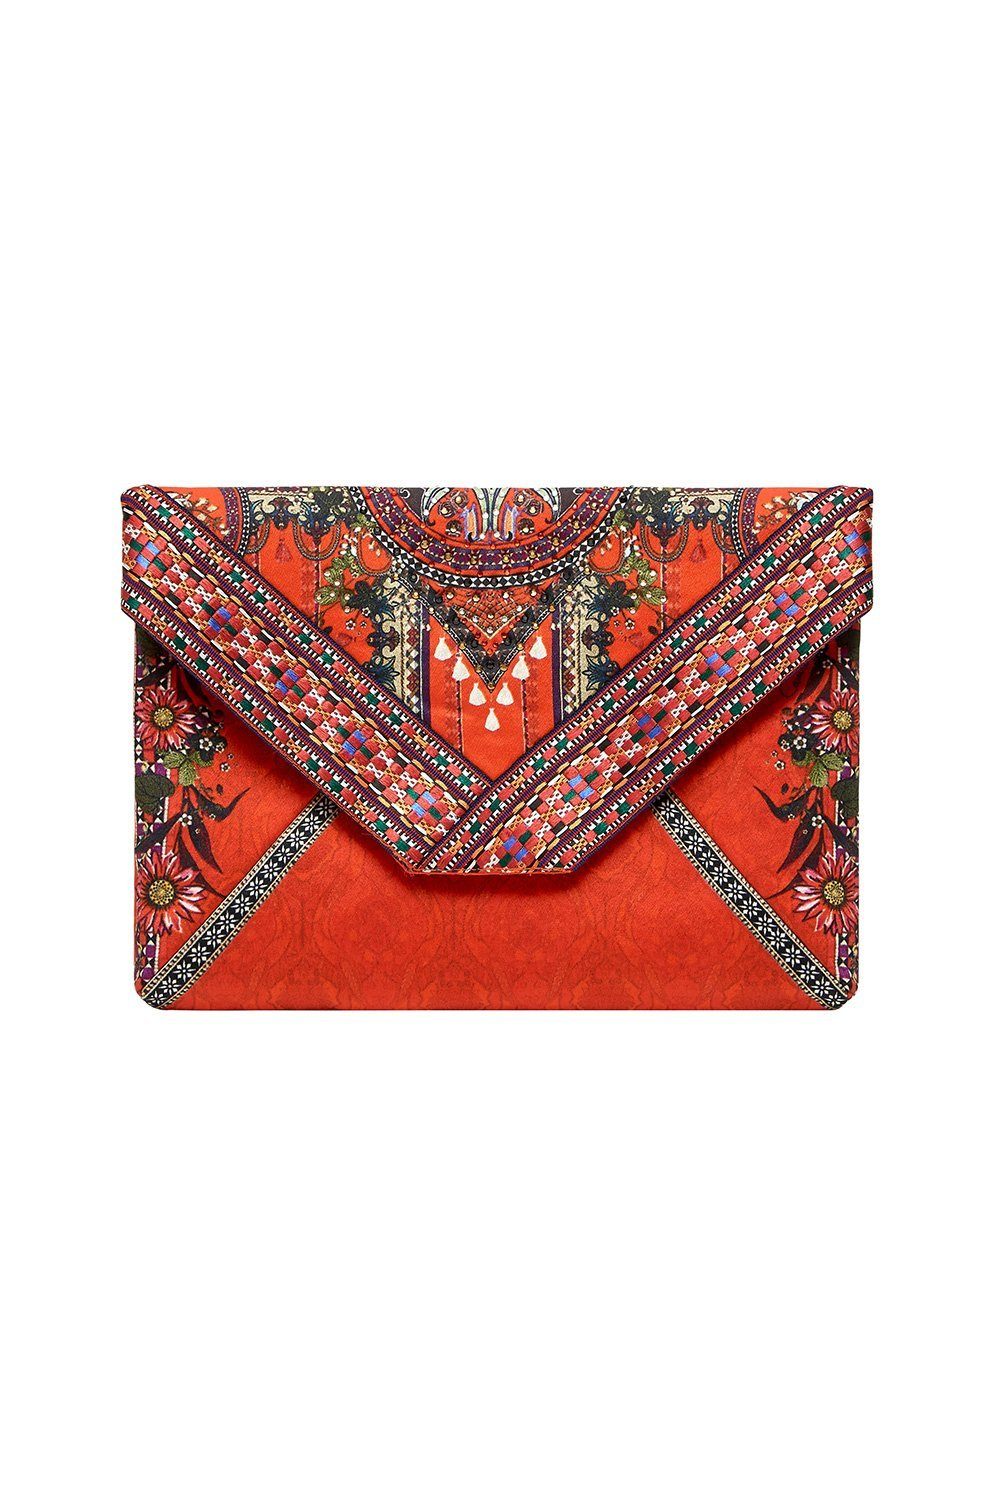 ENVELOPE CLUTCH WONDERING WARATAH